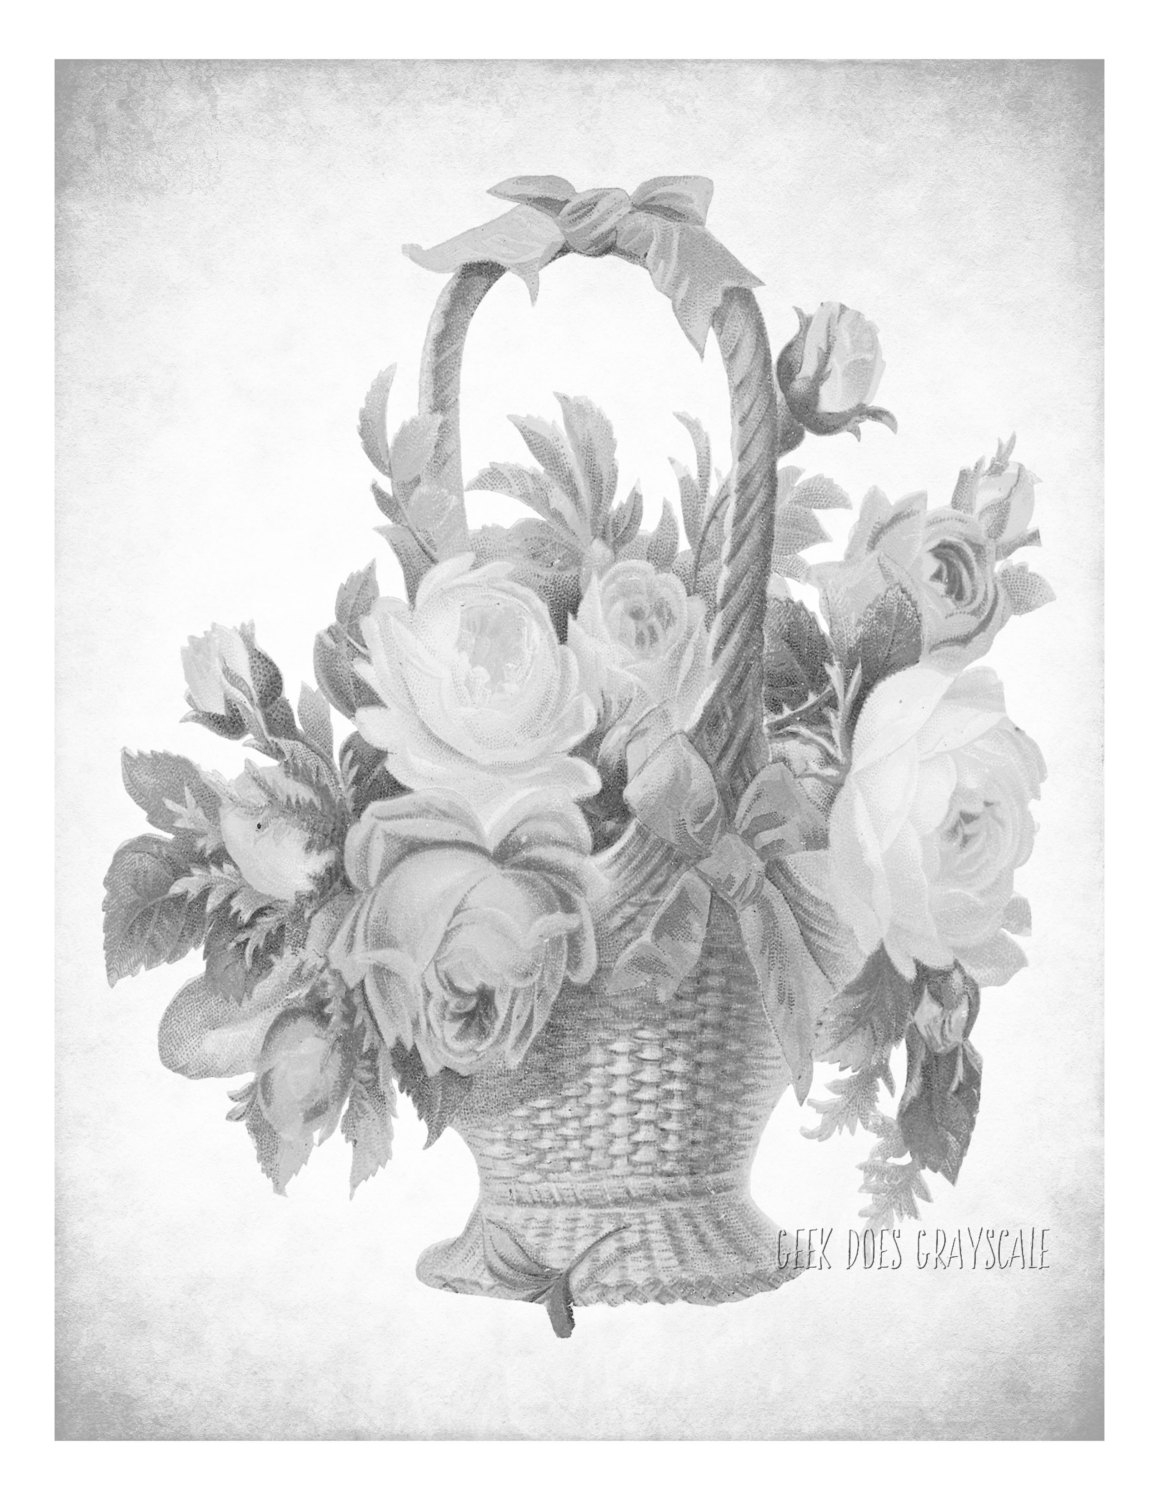 Let Your Light Shine Coloring Page - Flower Basket Grayscale Coloring Page Adult Coloring